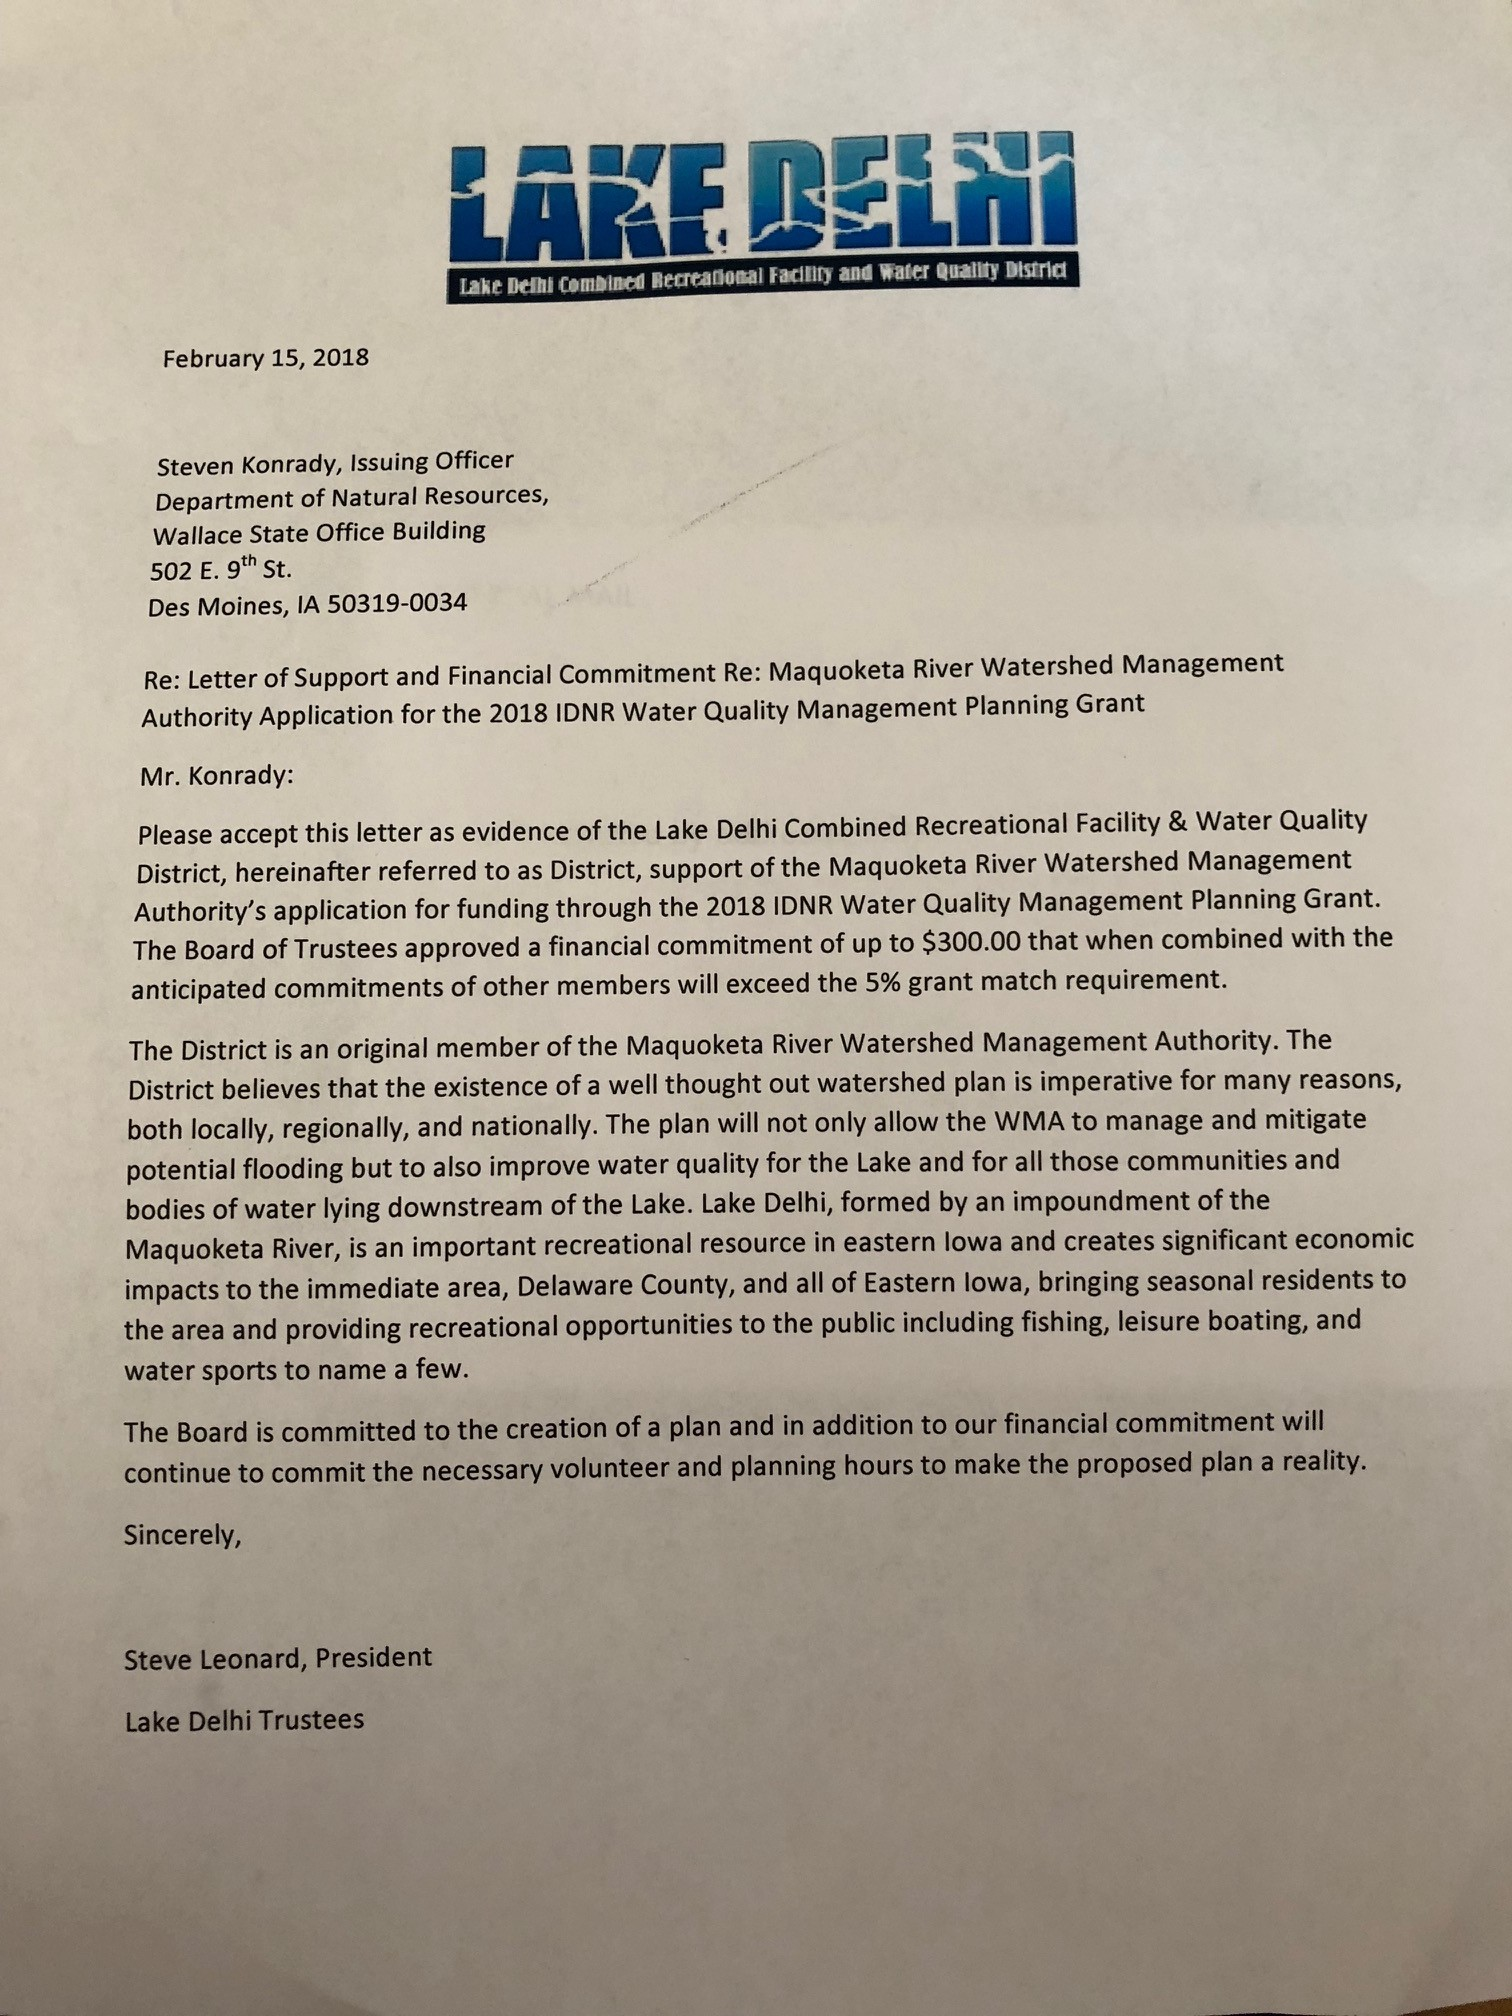 Letter Of Support And Commitment To Mrwma For  Water Quality